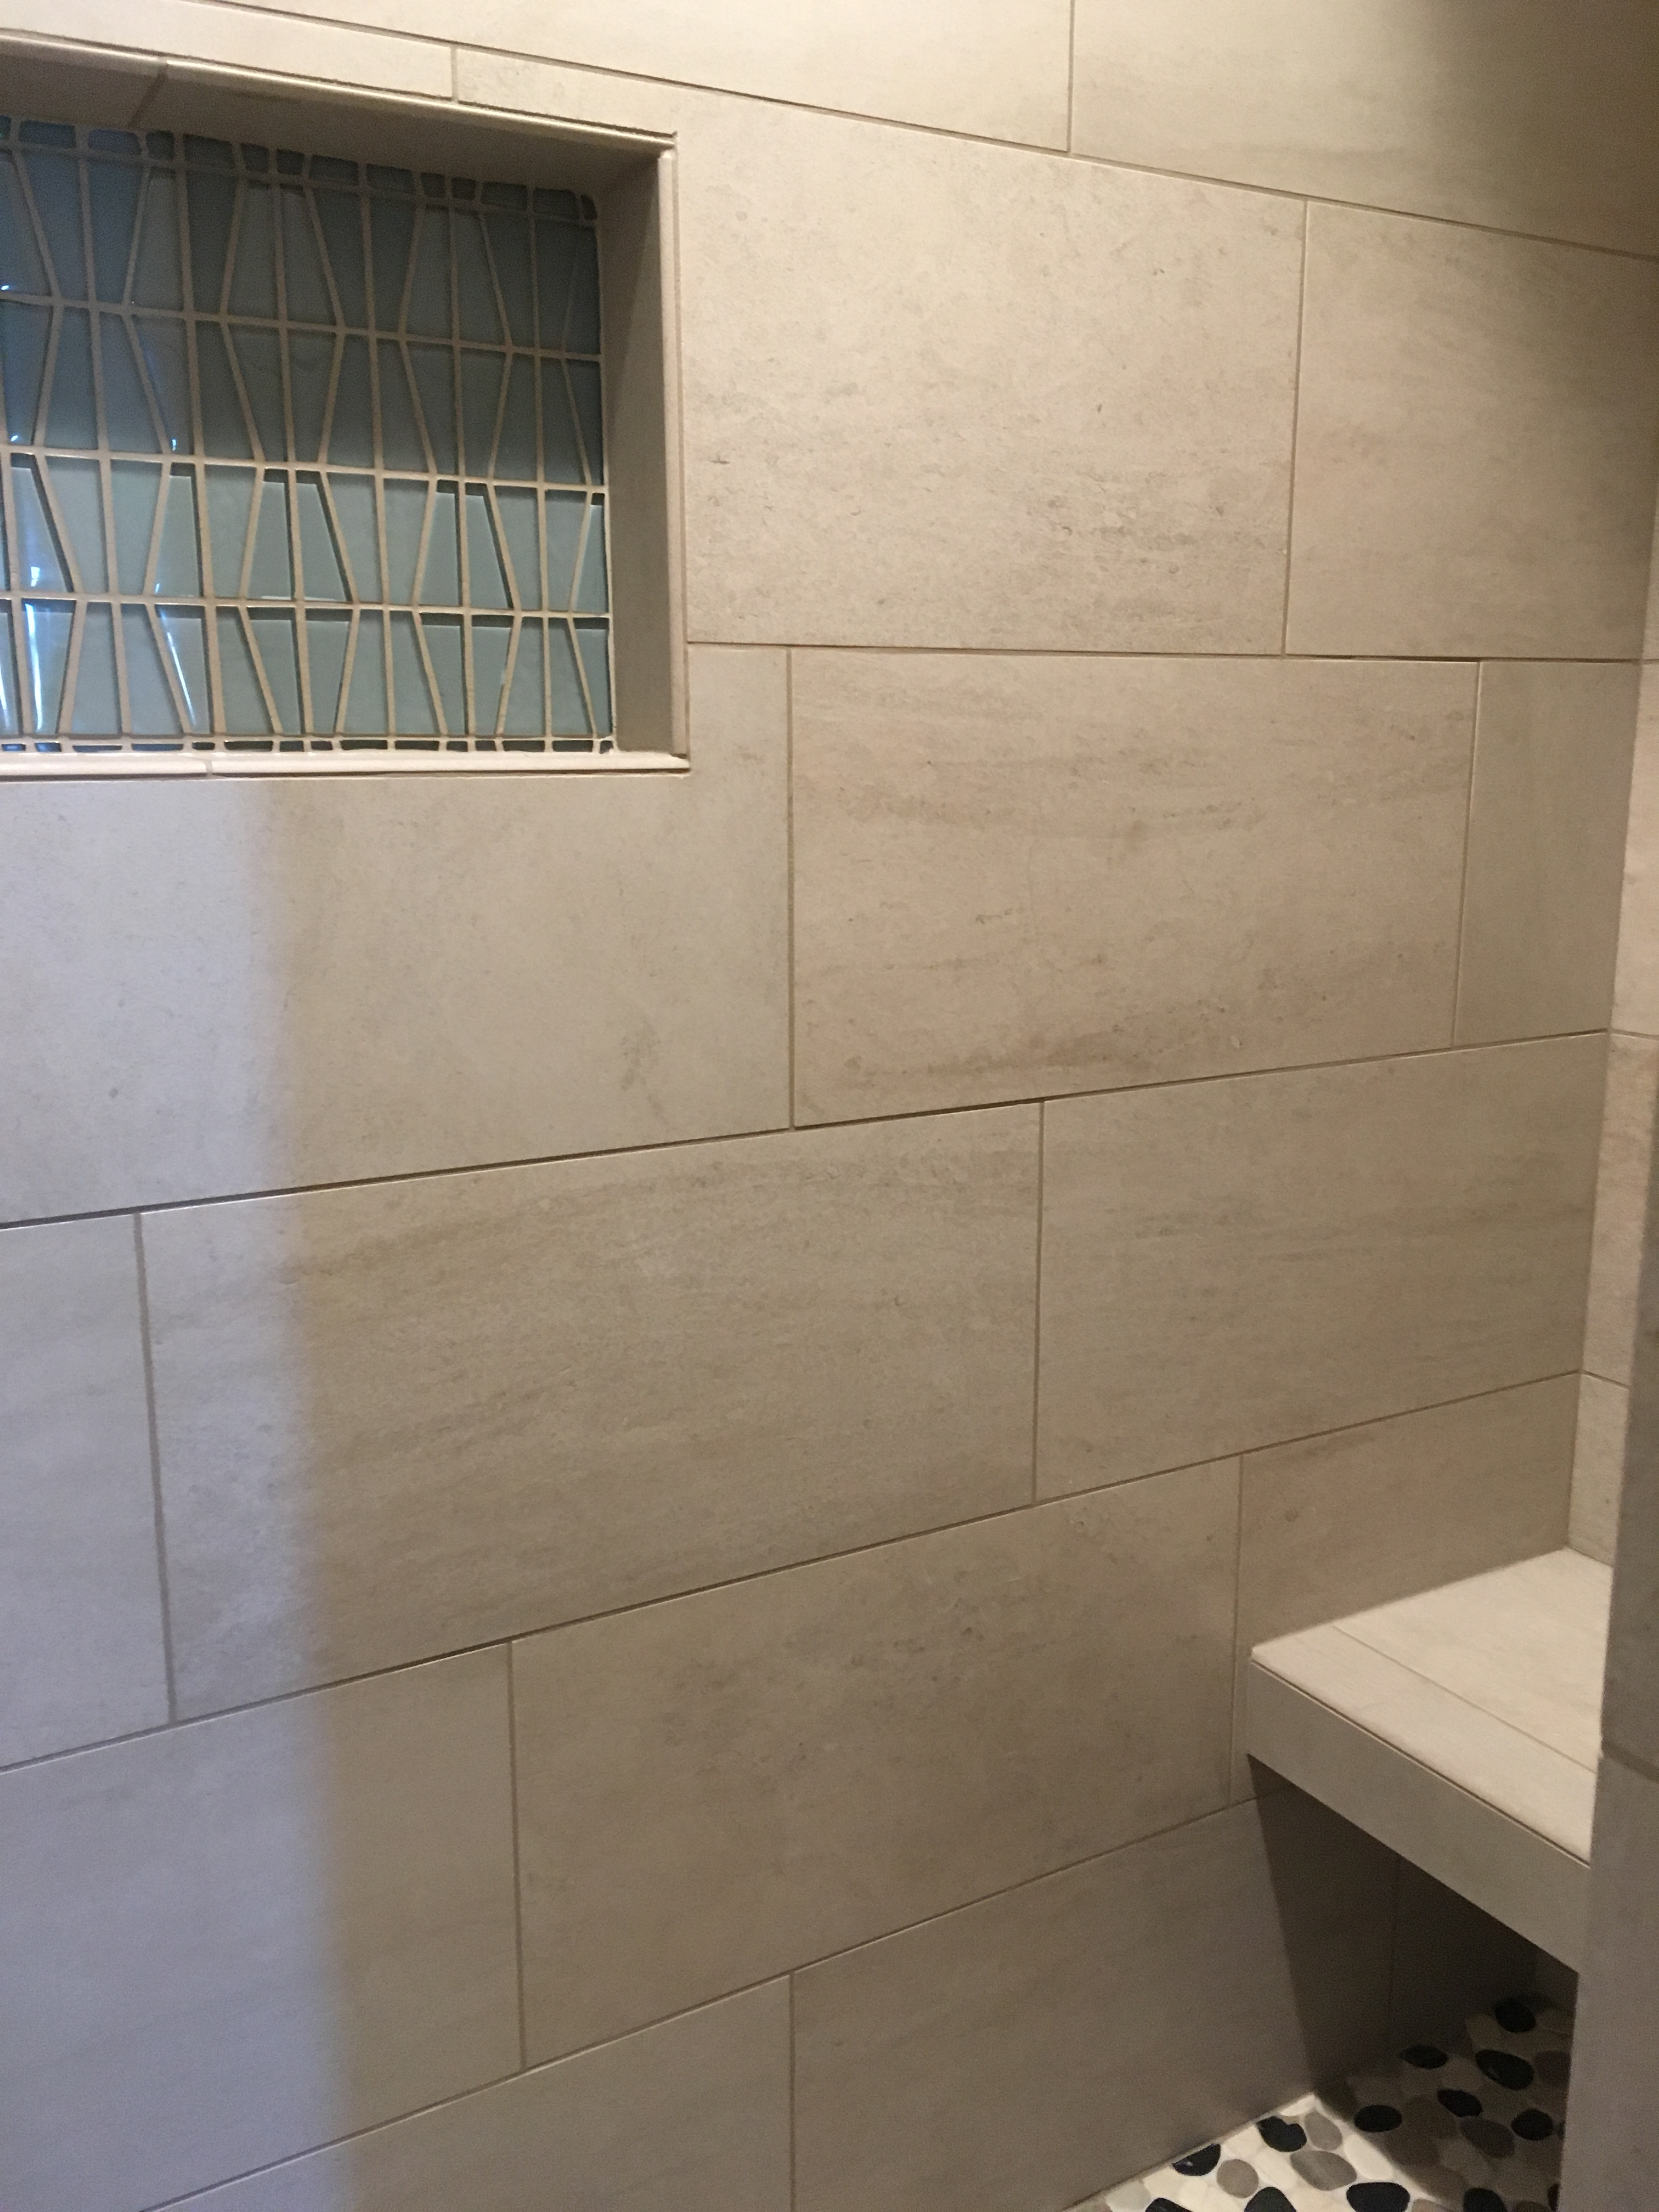 Mares bathroom remodel mares bathroom remodel shower happy floors monaco wall tile dailygadgetfo Image collections